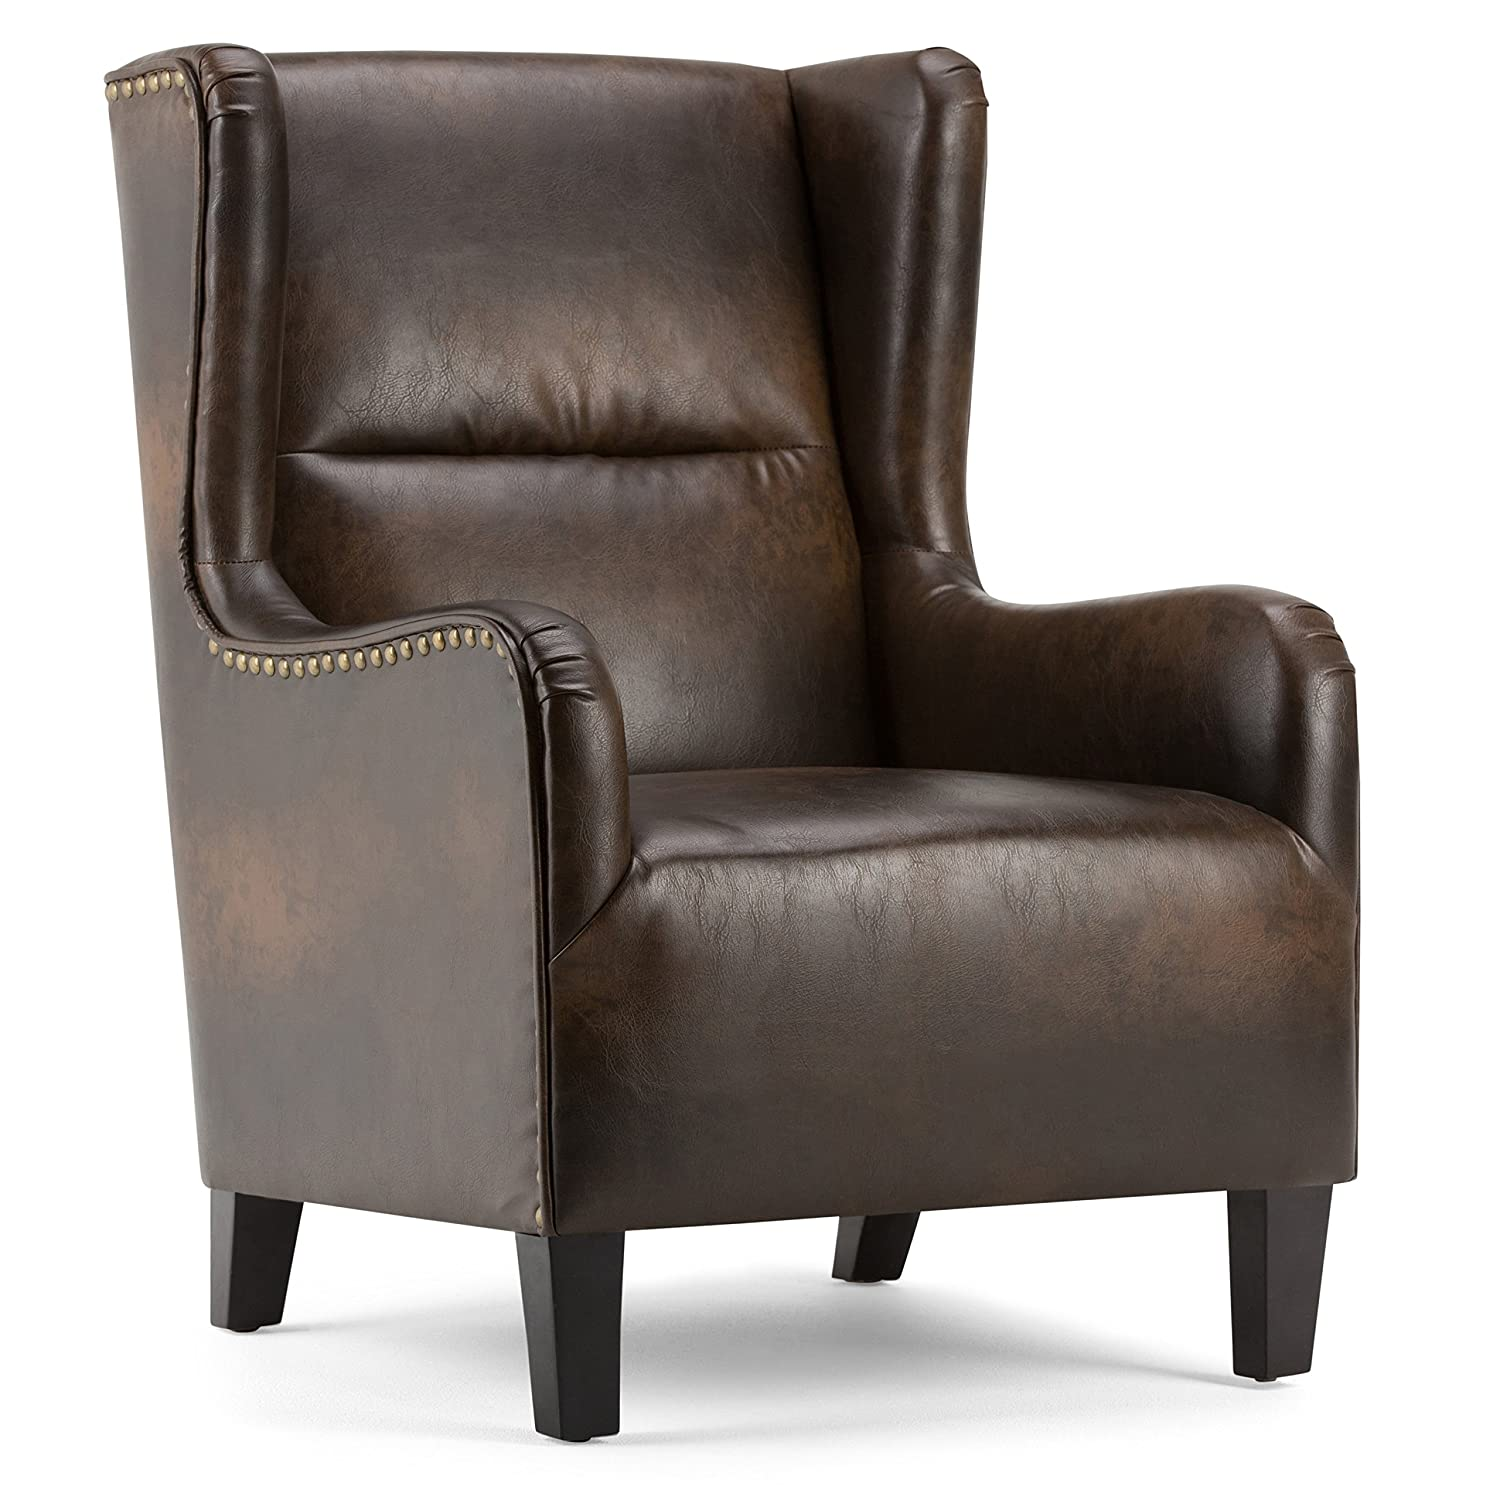 Incroyable Amazon.com: Simpli Home AXCCHR 019 DBR Taylor 28 Inch Wide Traditional  Wingback Armchair In Distressed Brown Bonded Leather: Kitchen U0026 Dining